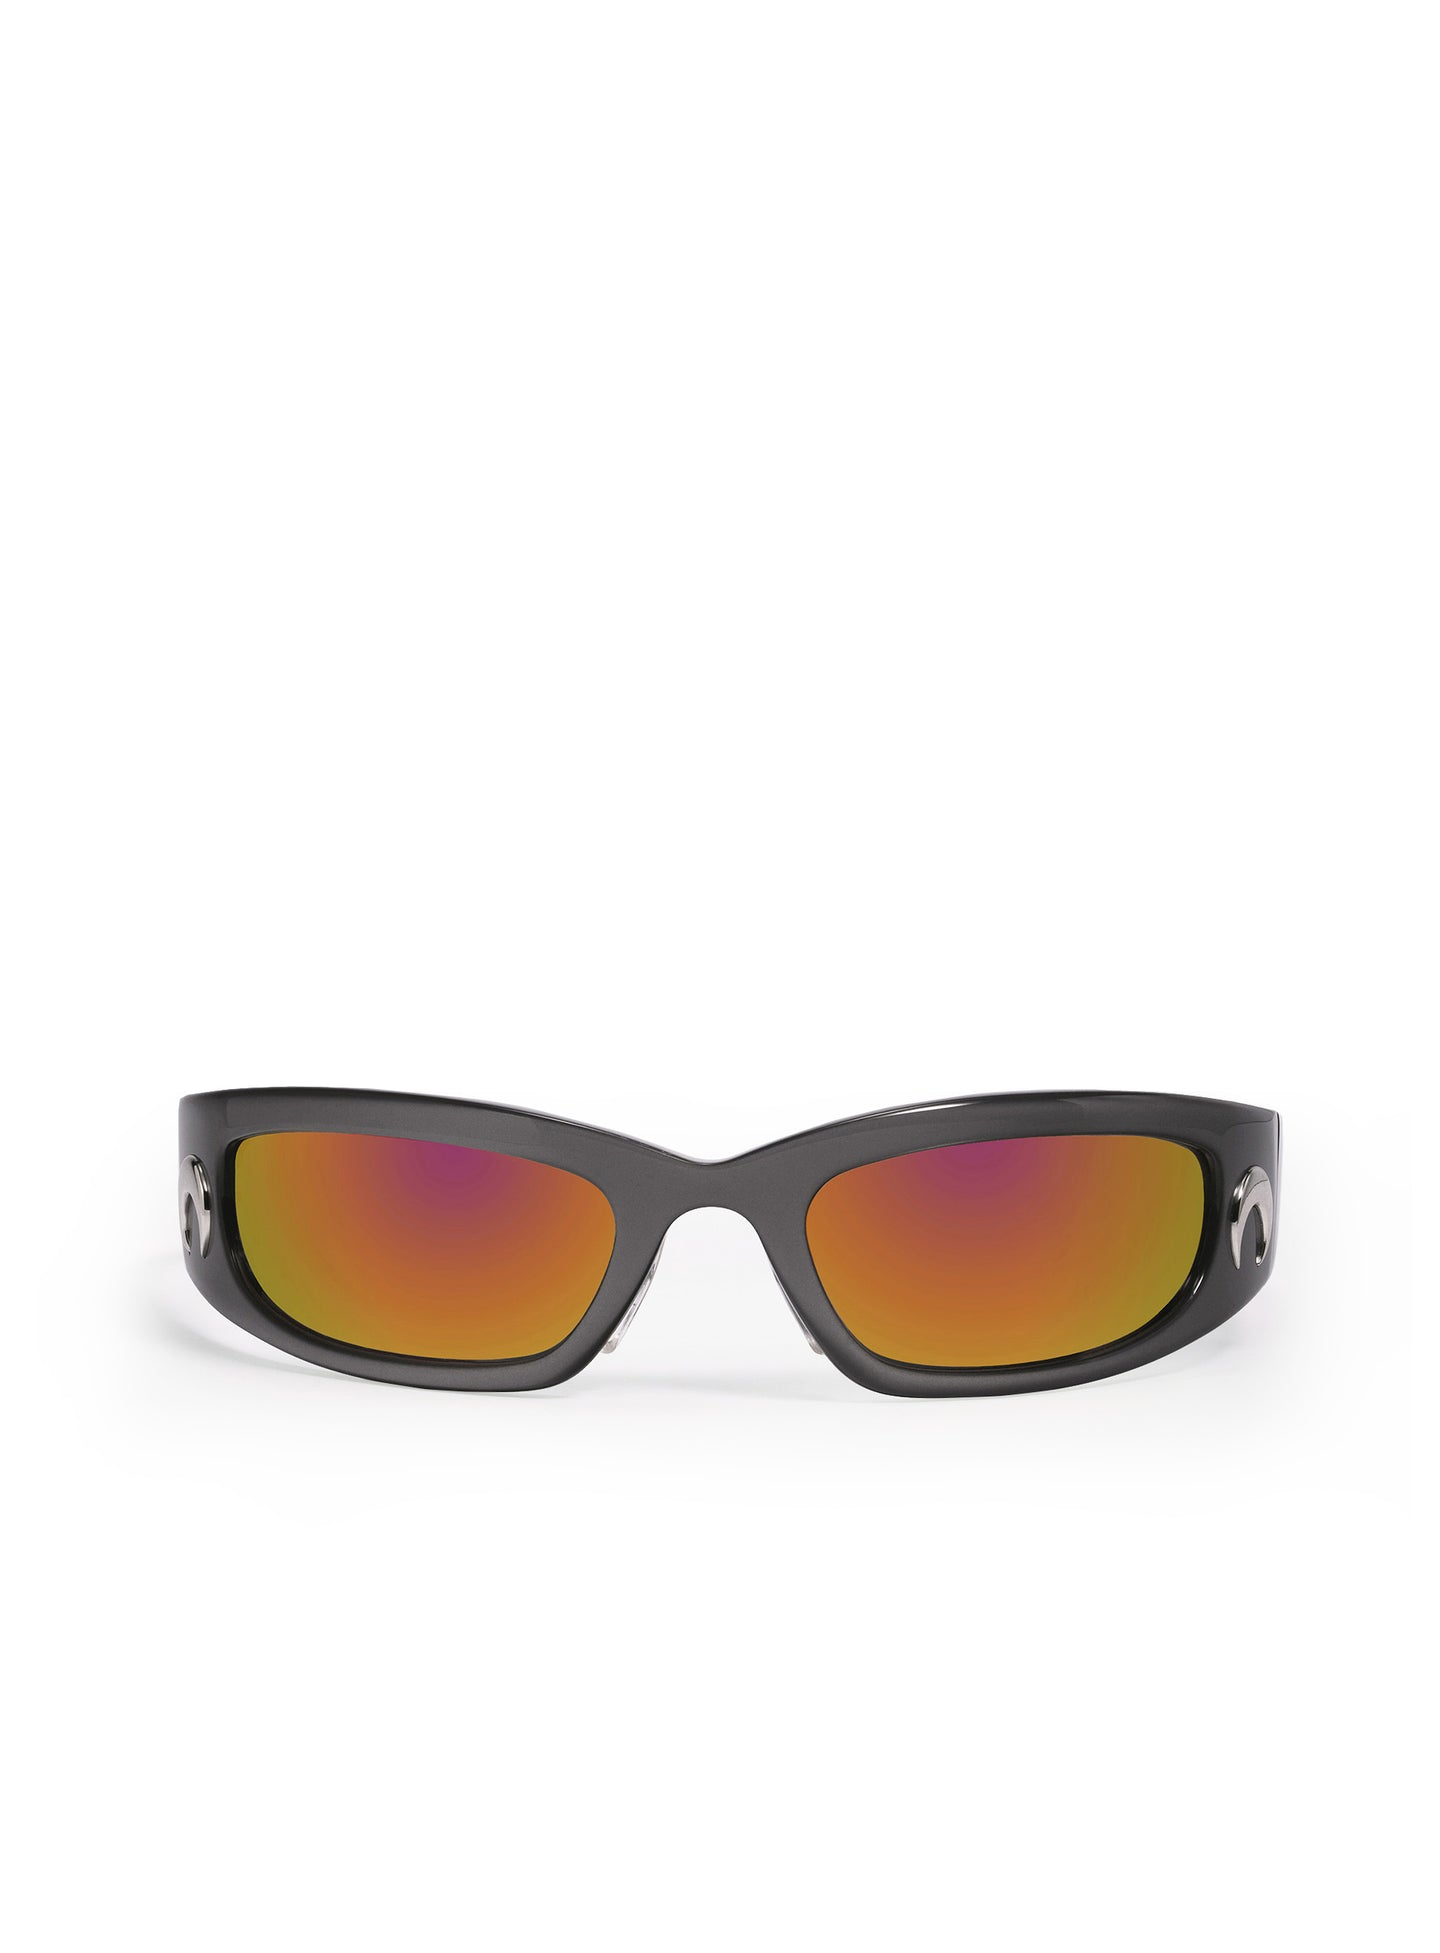 GM Curved Tinted Glasses Orange